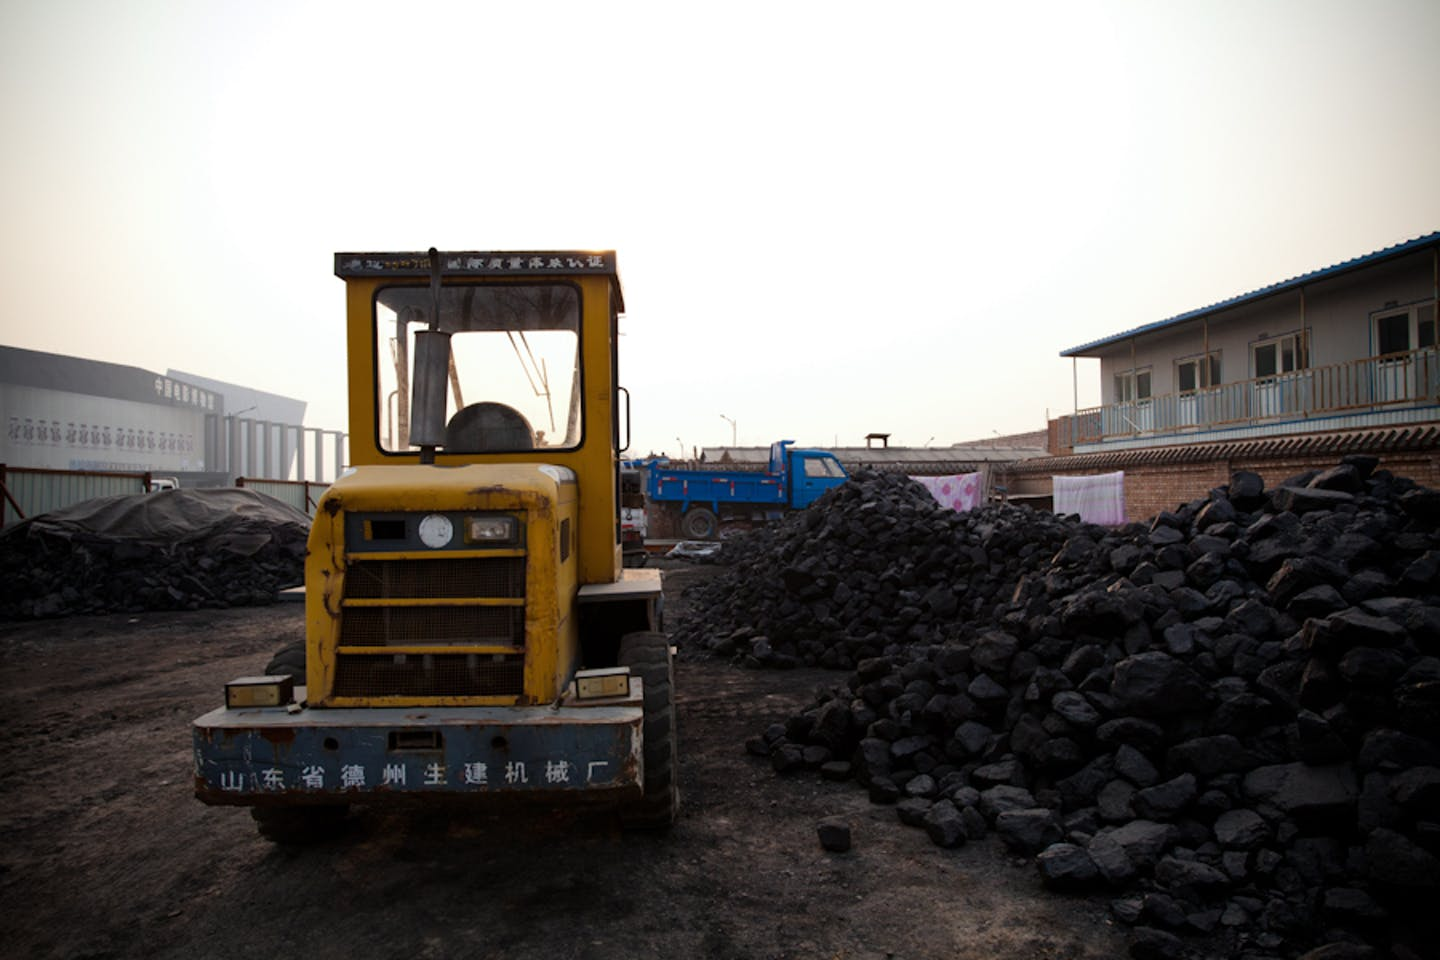 coal at seemingly abandoned construction site in China